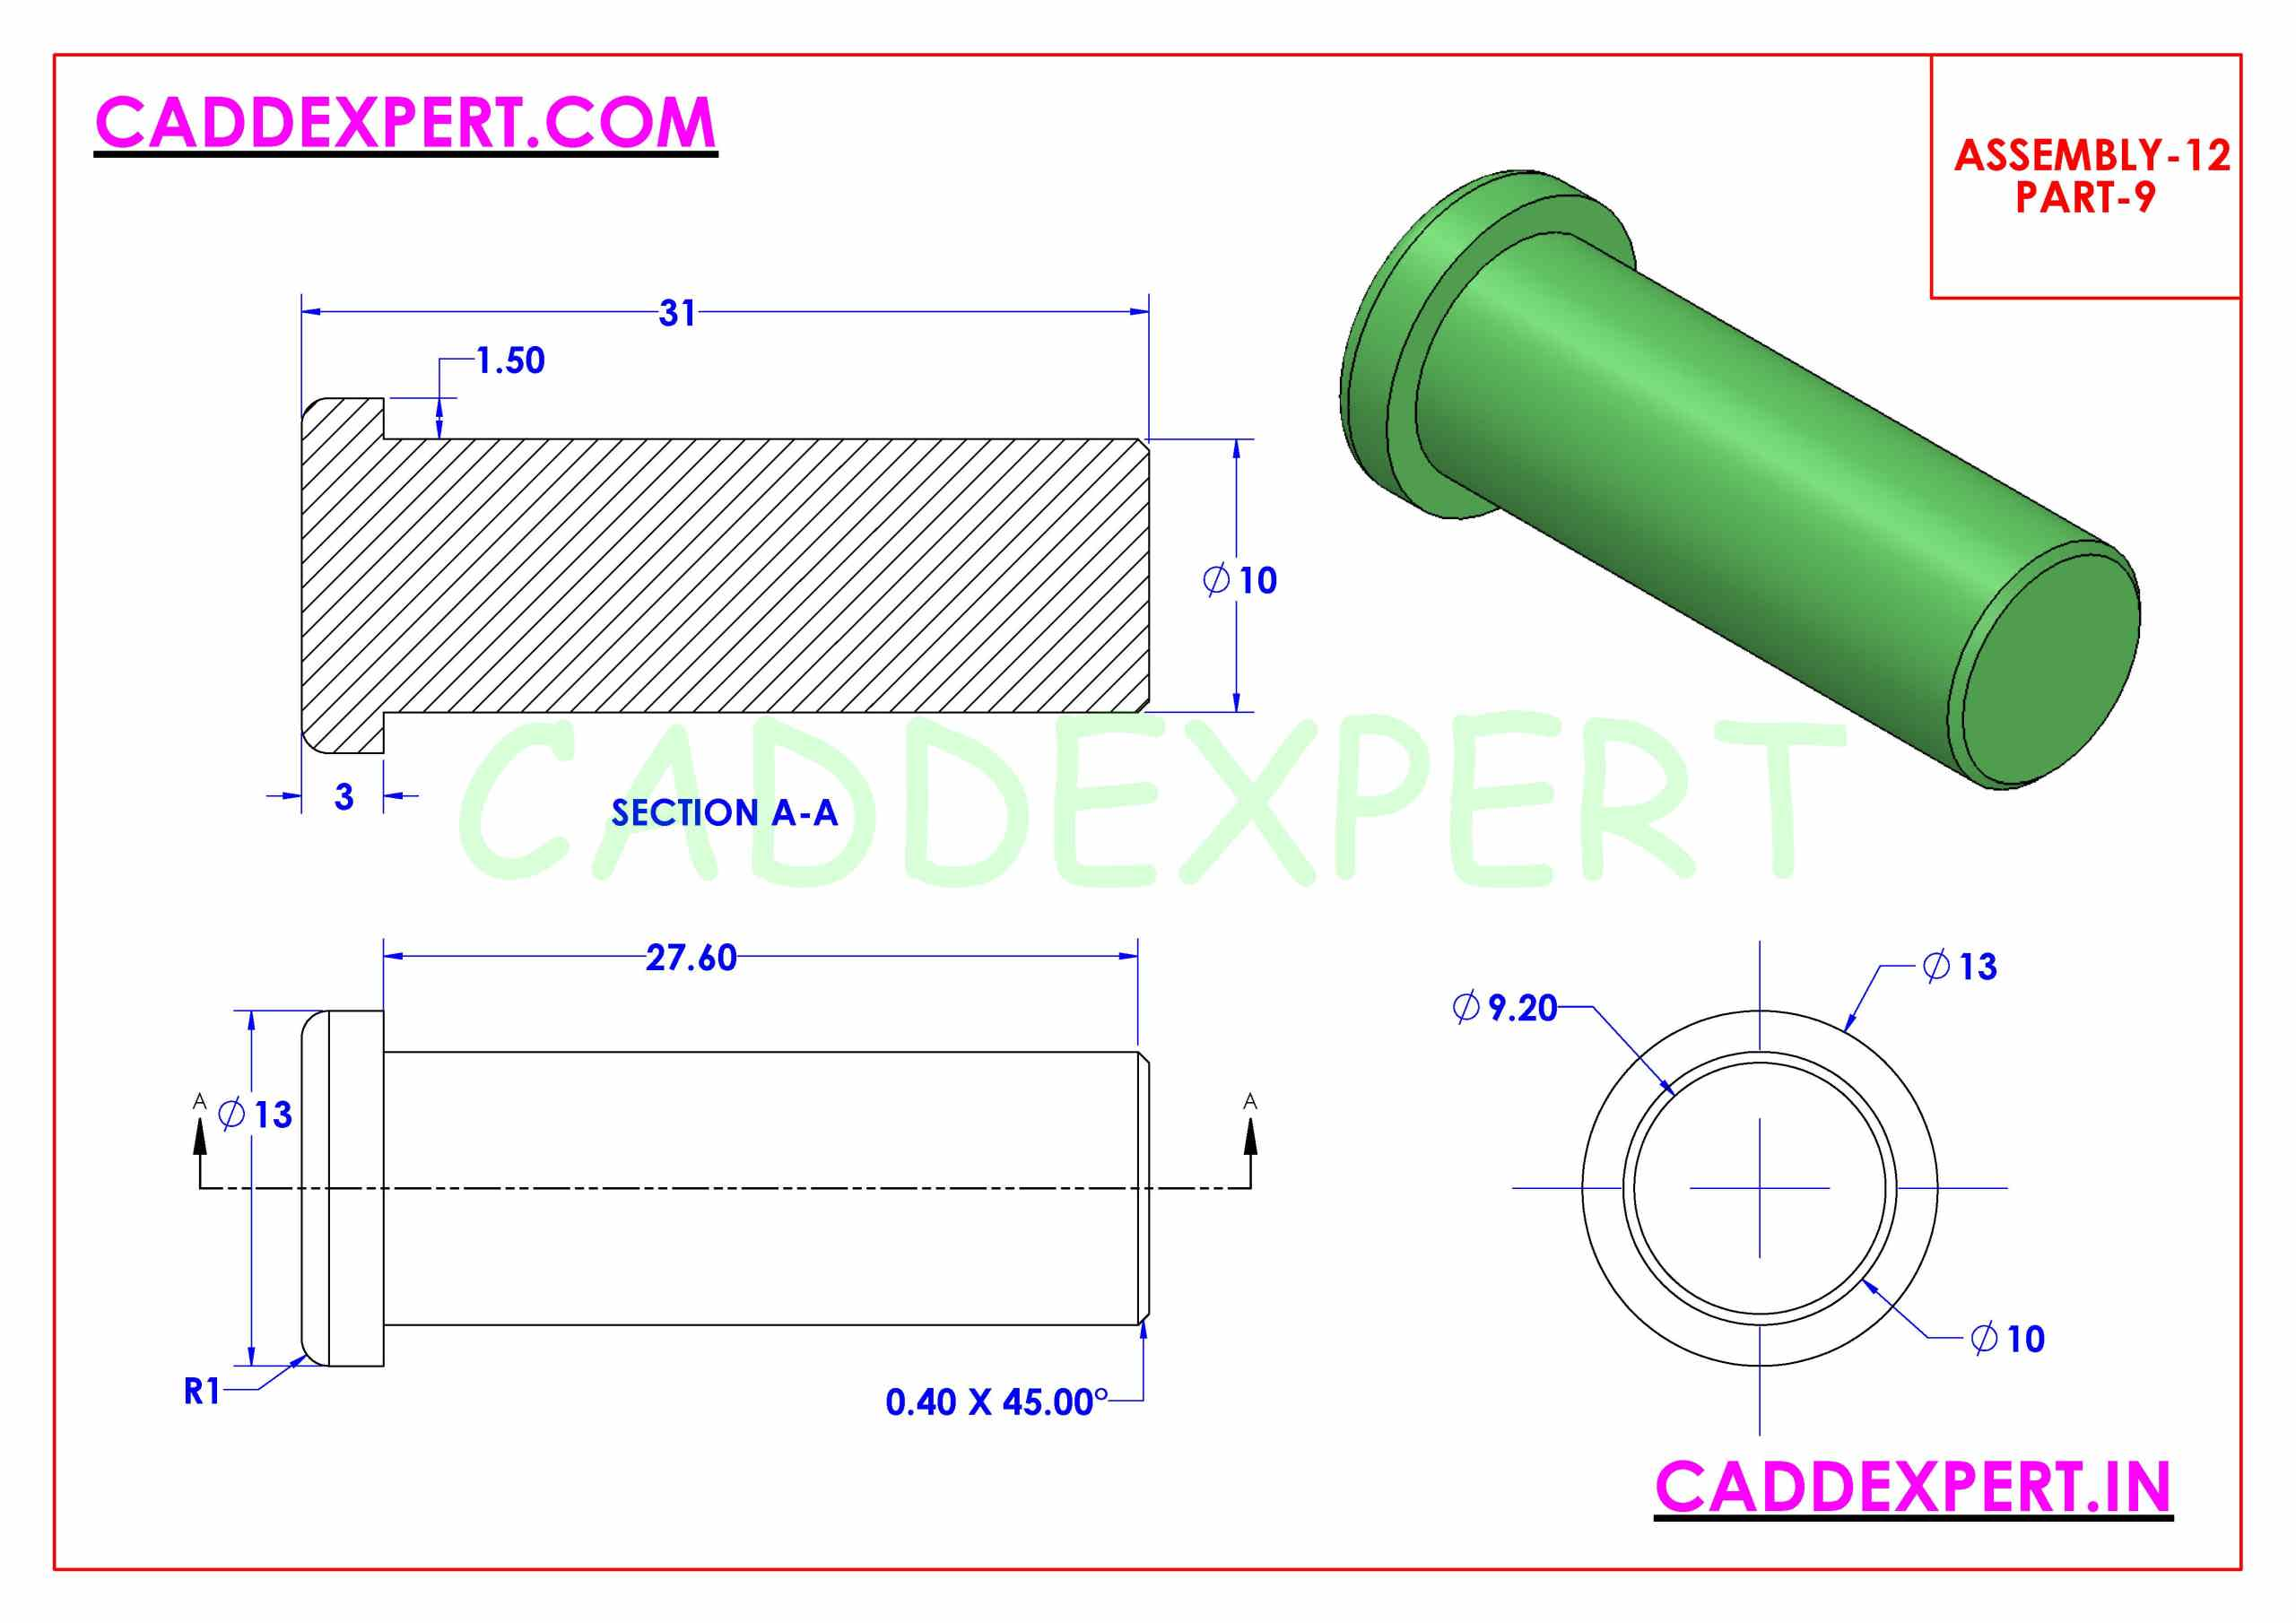 SOLIDWORKS ASSEMBLY JACK SCREW PART - 9